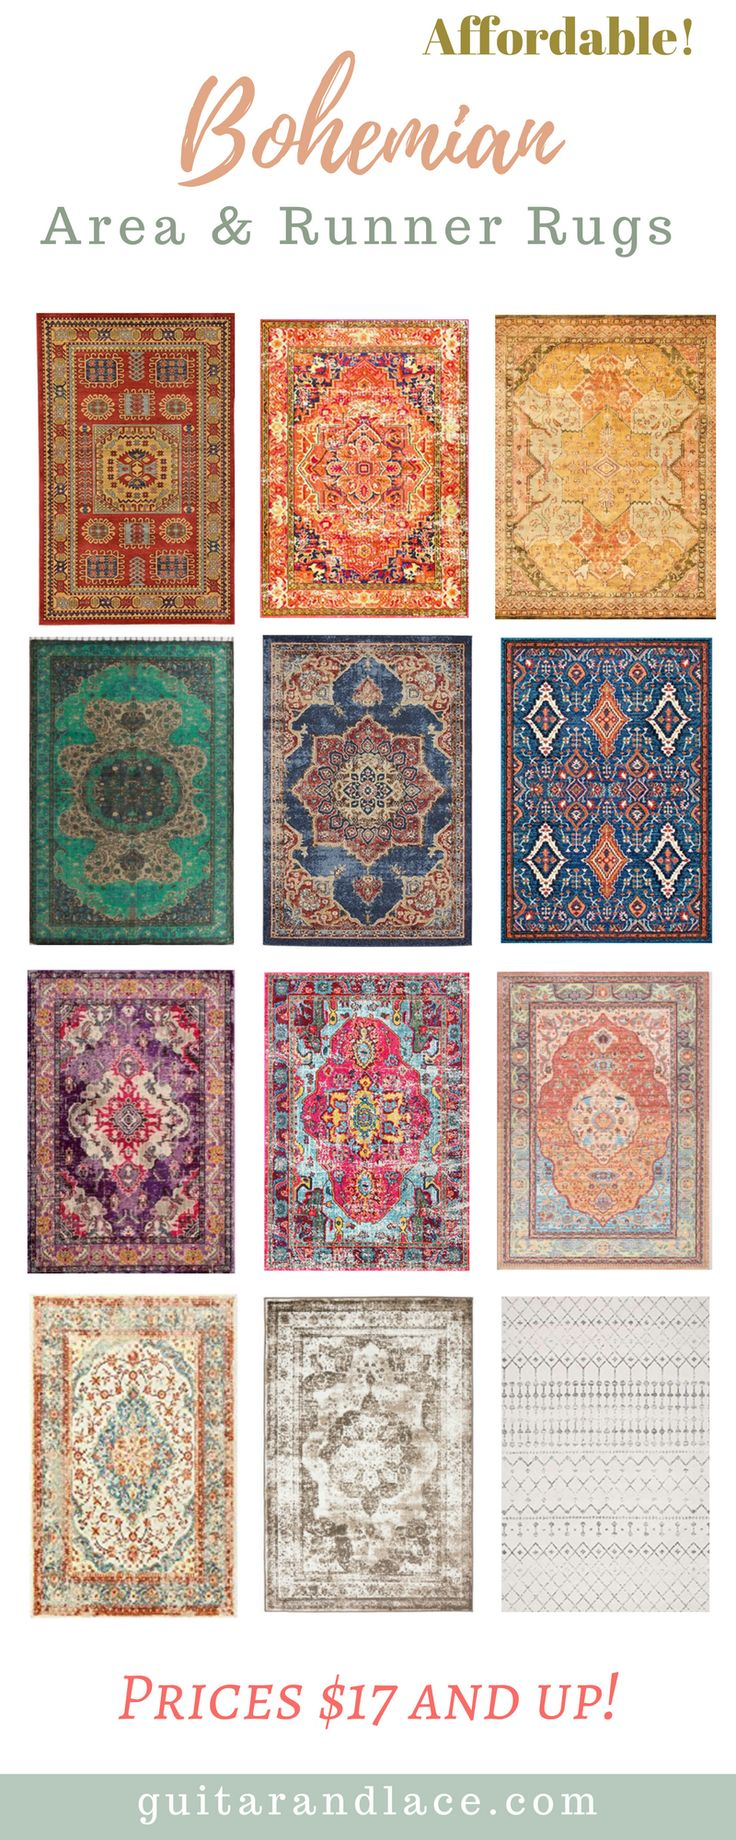 Cheap antique rugs! Turkish and Moroccan style rugs. Runner rugs for your kitchen. Bohemian styles. boho rugs. Vibrant and neutral colors. Affordable! Budget Home Decor!